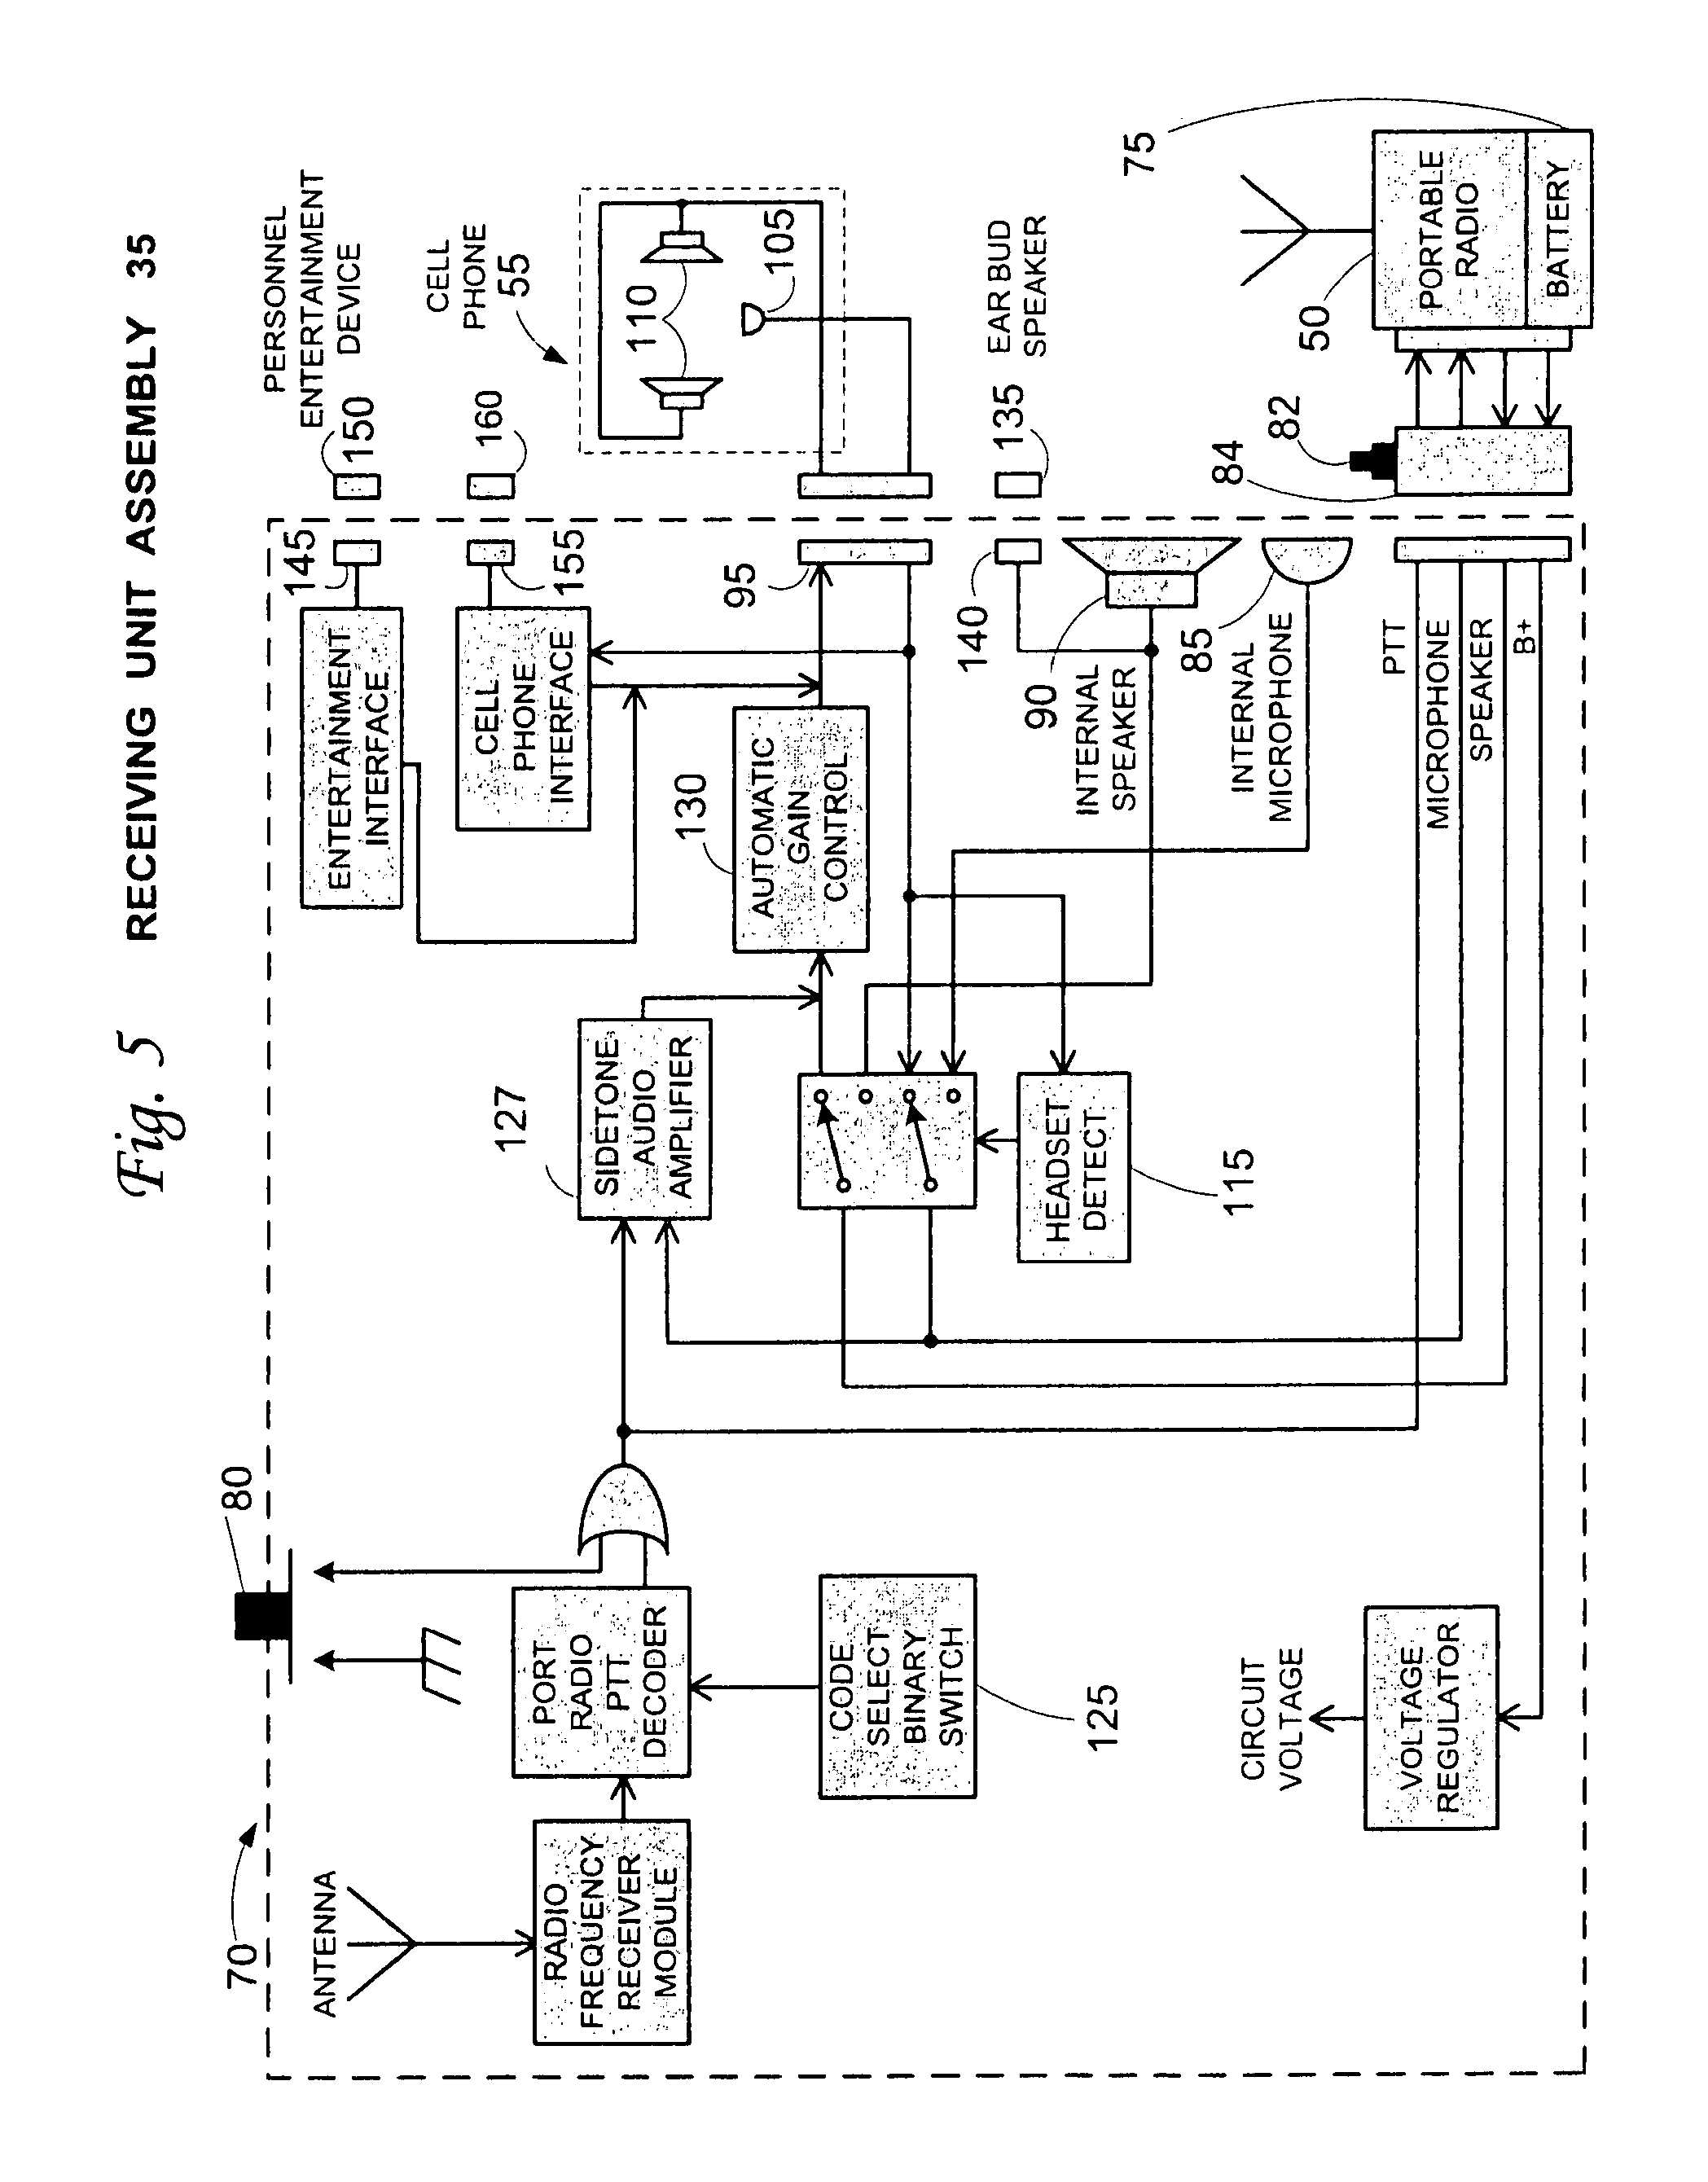 scosche loc2sl wiring diagram with Motorcycle  Munication System Wiring Diagram on 2004 Nissan Altima Fuse Box Diagram Pdf in addition 2006 International 4300 Radio Wiring Diagram together with Scosche Toyota Wiring Harness Diagram also Simplicity Mower Wiring Diagram 1692129 in addition Audio Cable Wiring Diagrams.